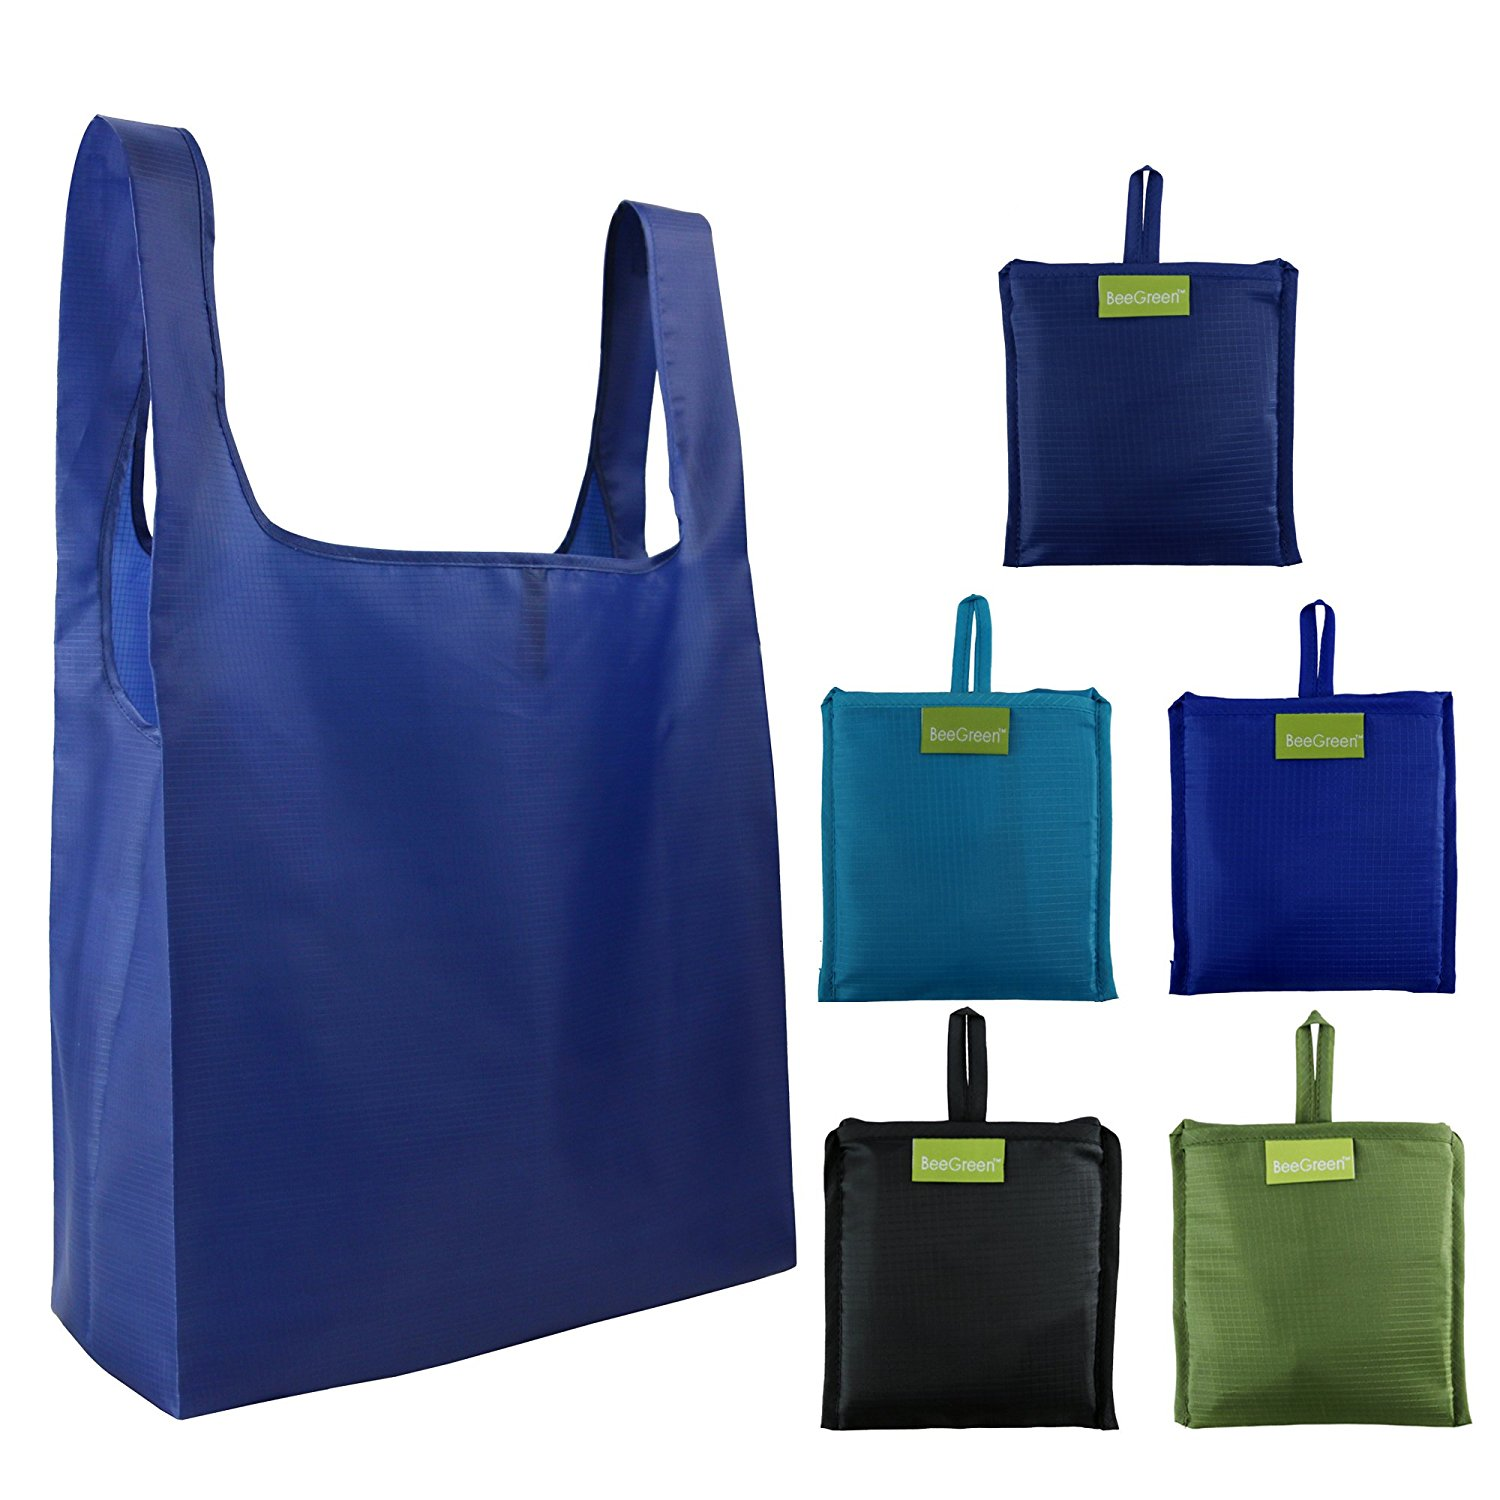 Amazon.com: Reusable Grocery Bags 5 Pack, Grocery Tote Folded into ...